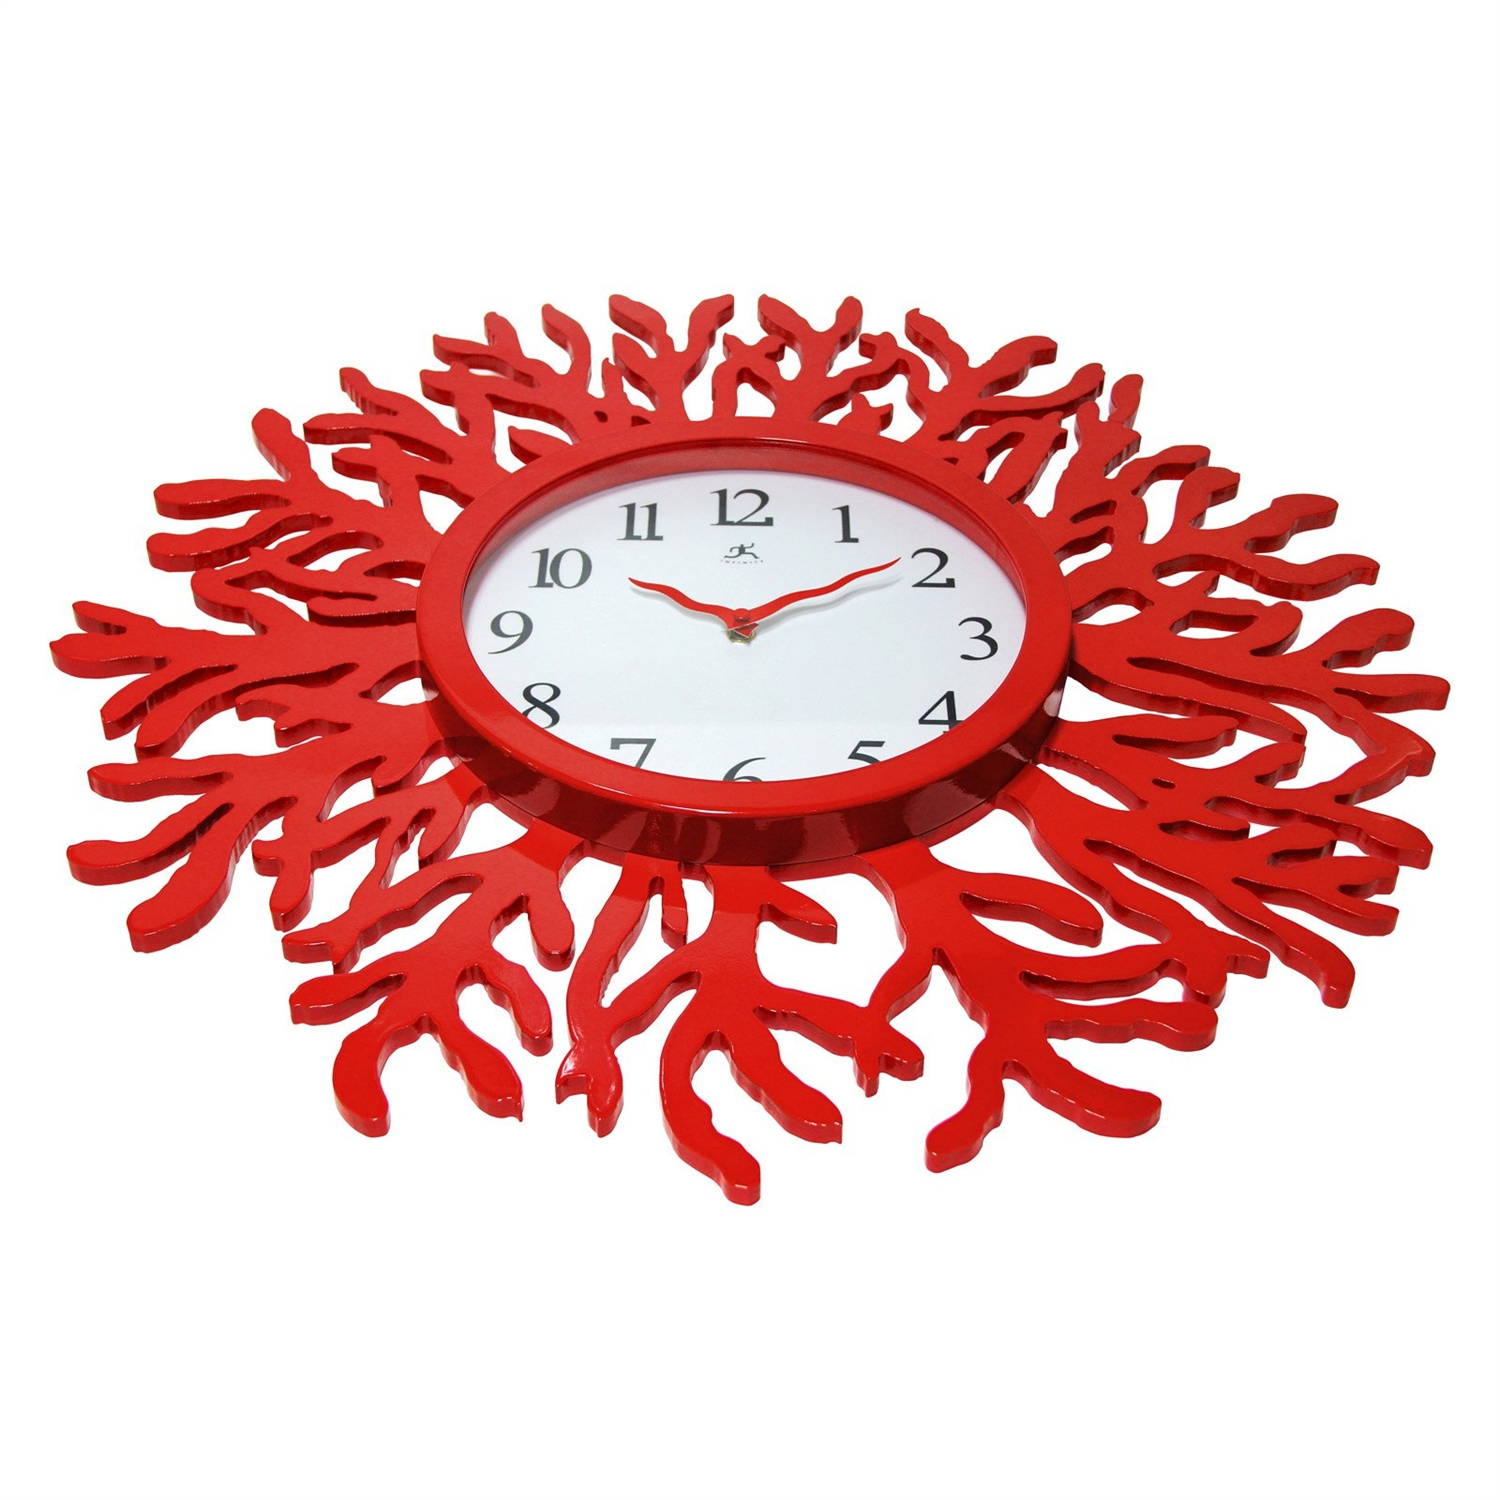 Red coral reef modern wall clock ocean beach theme 22 inch retail price 16900 amipublicfo Images